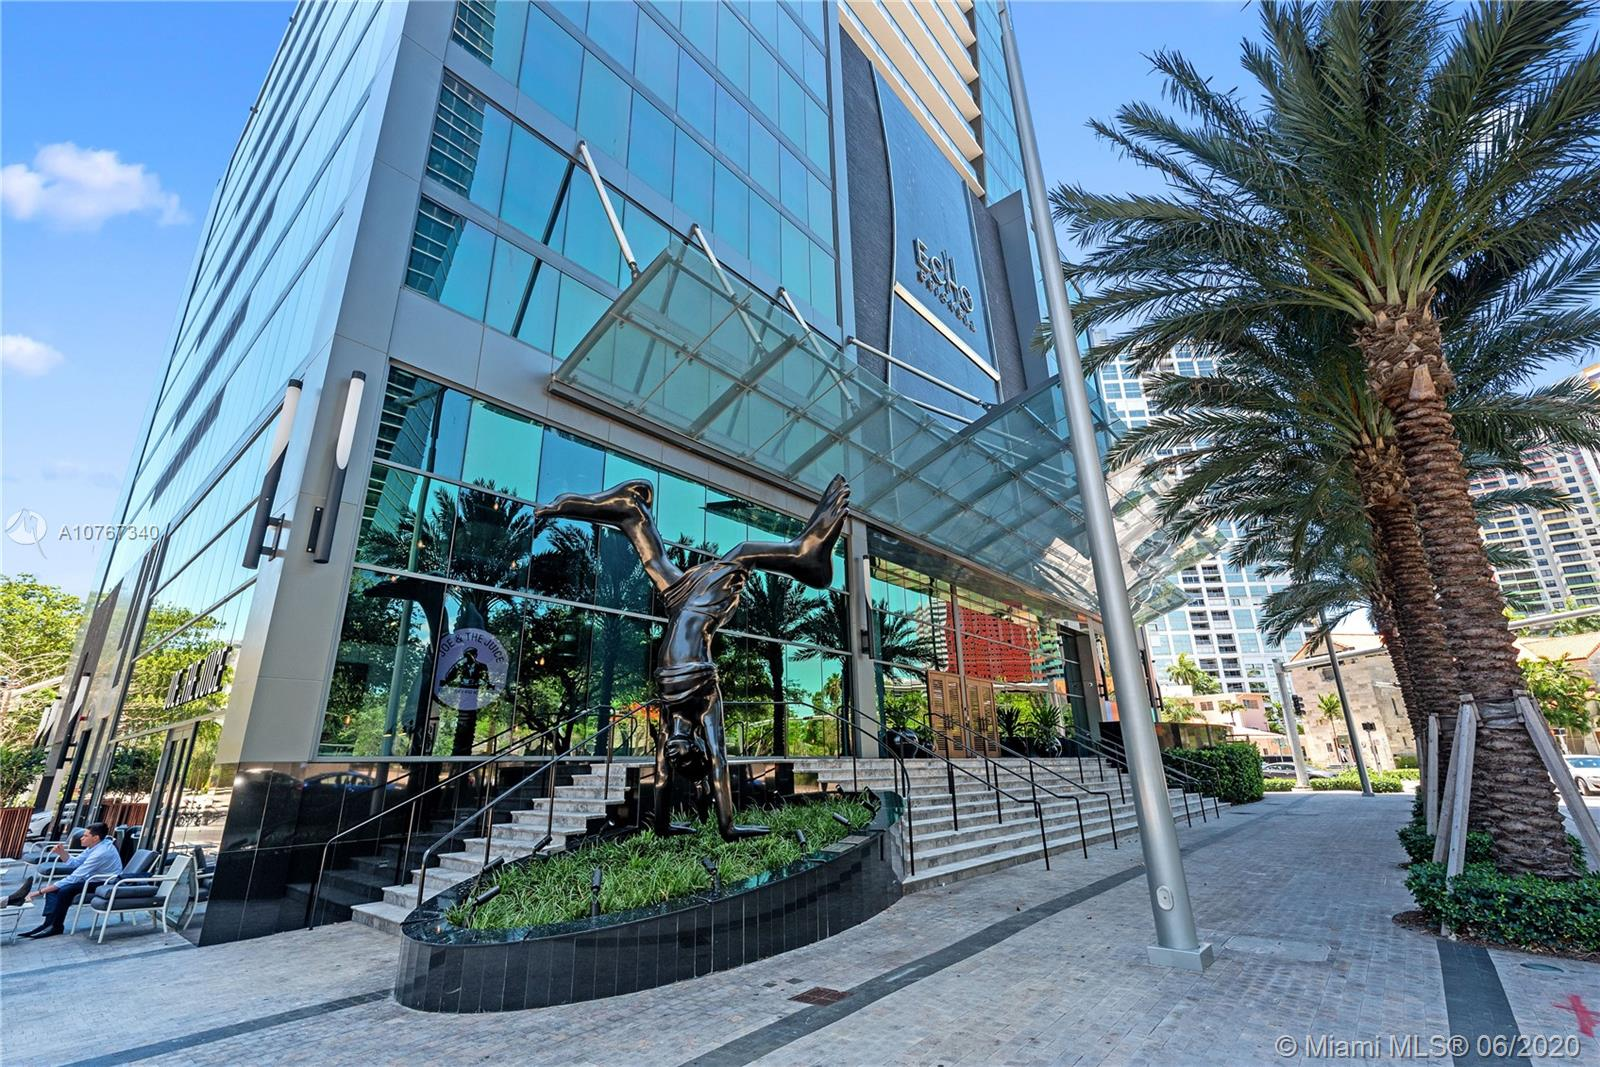 1451 Brickell Ave # 3703, Miami, Florida 33131, 2 Bedrooms Bedrooms, ,3 BathroomsBathrooms,Residential,For Sale,1451 Brickell Ave # 3703,A10767340